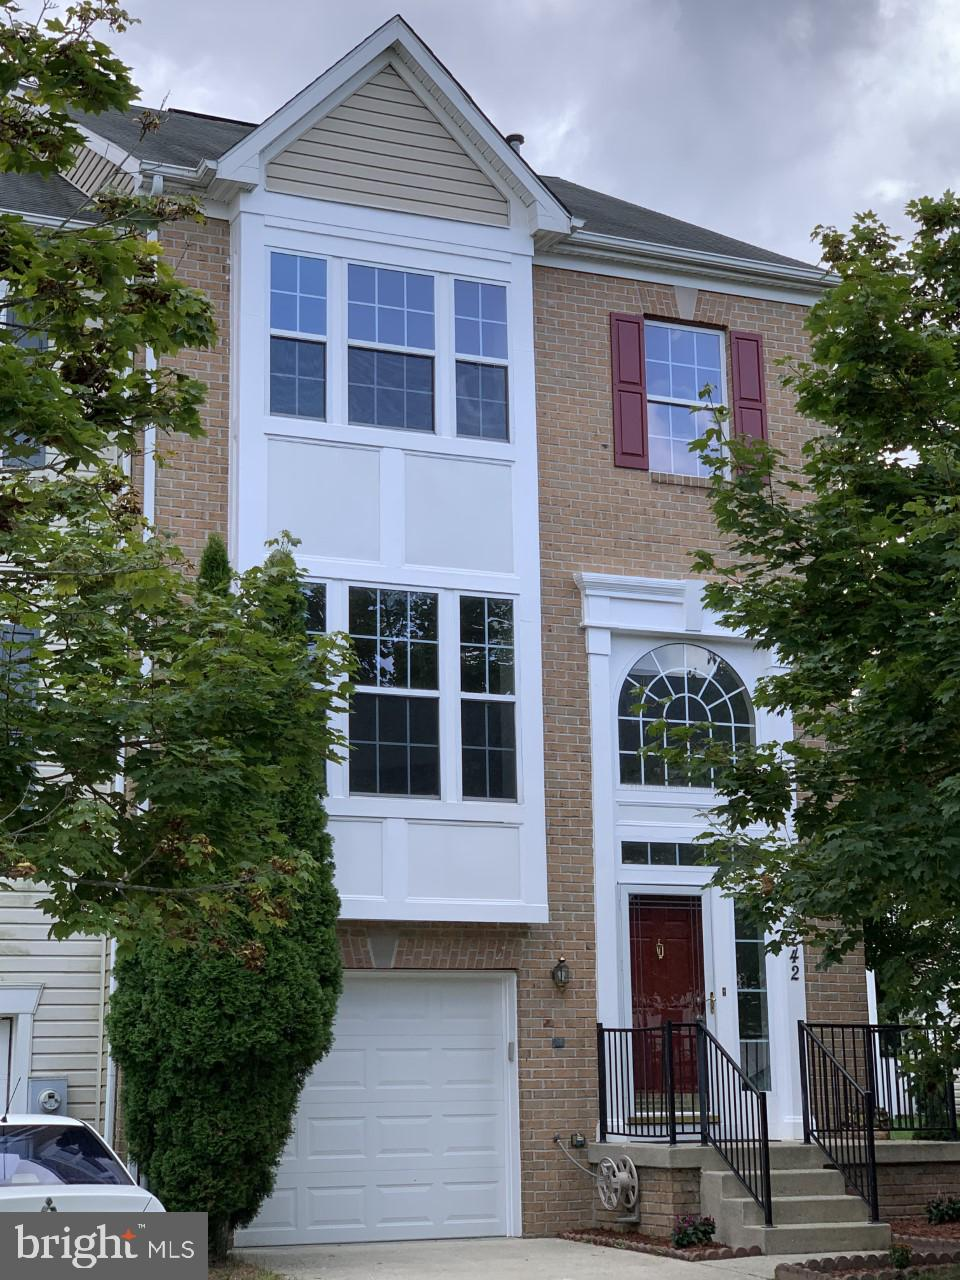 Elegant End unit Town House in absolutely move-in condition. Imposing brick front TH with front gabl